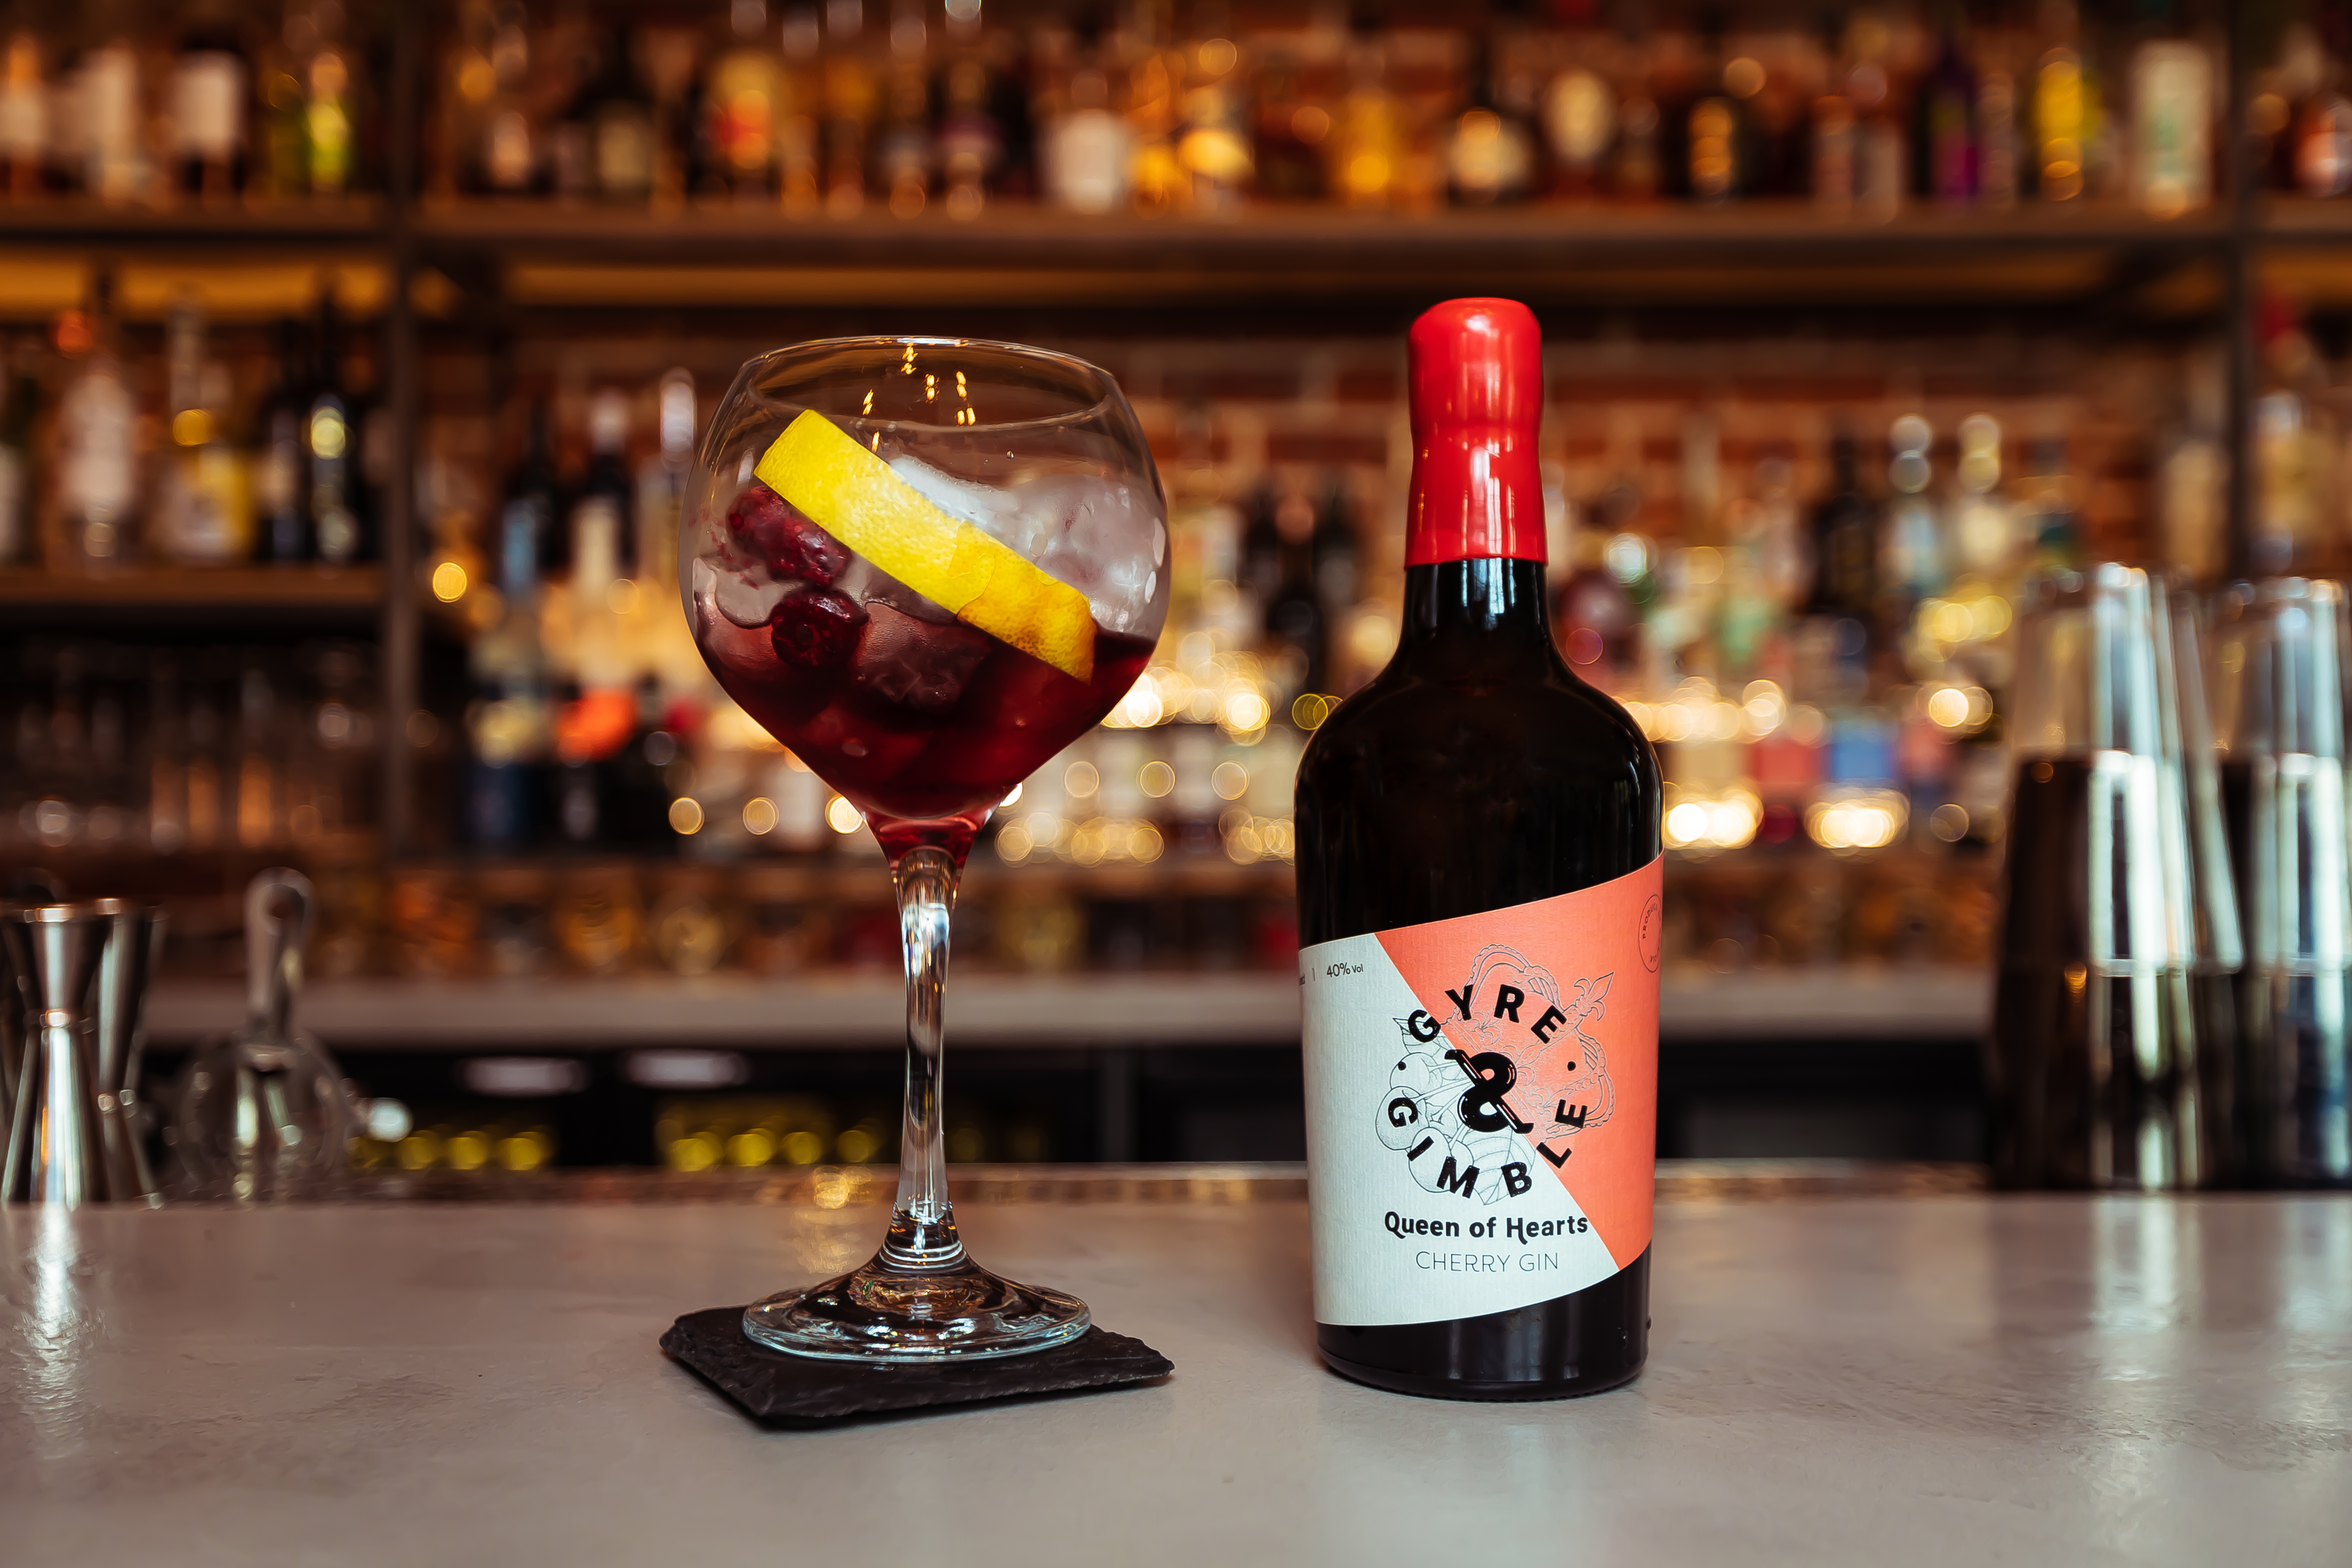 The Queen of Hearts gin from Gyre & Gimble